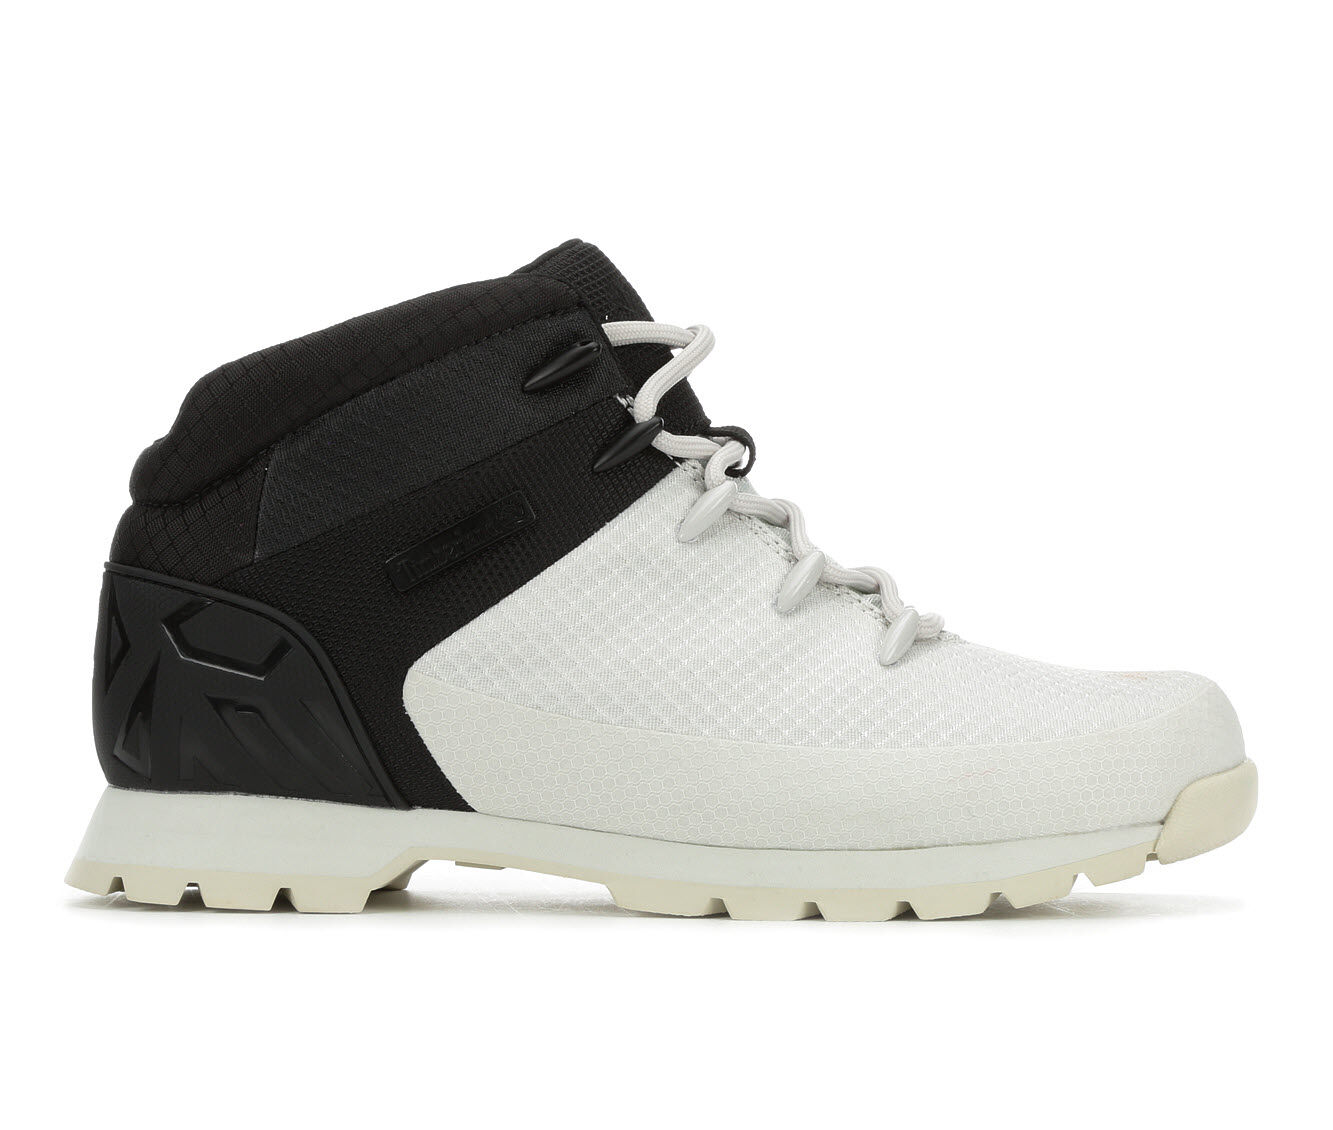 Men's Timberland Euro Sprint Hiker Boots White/Black